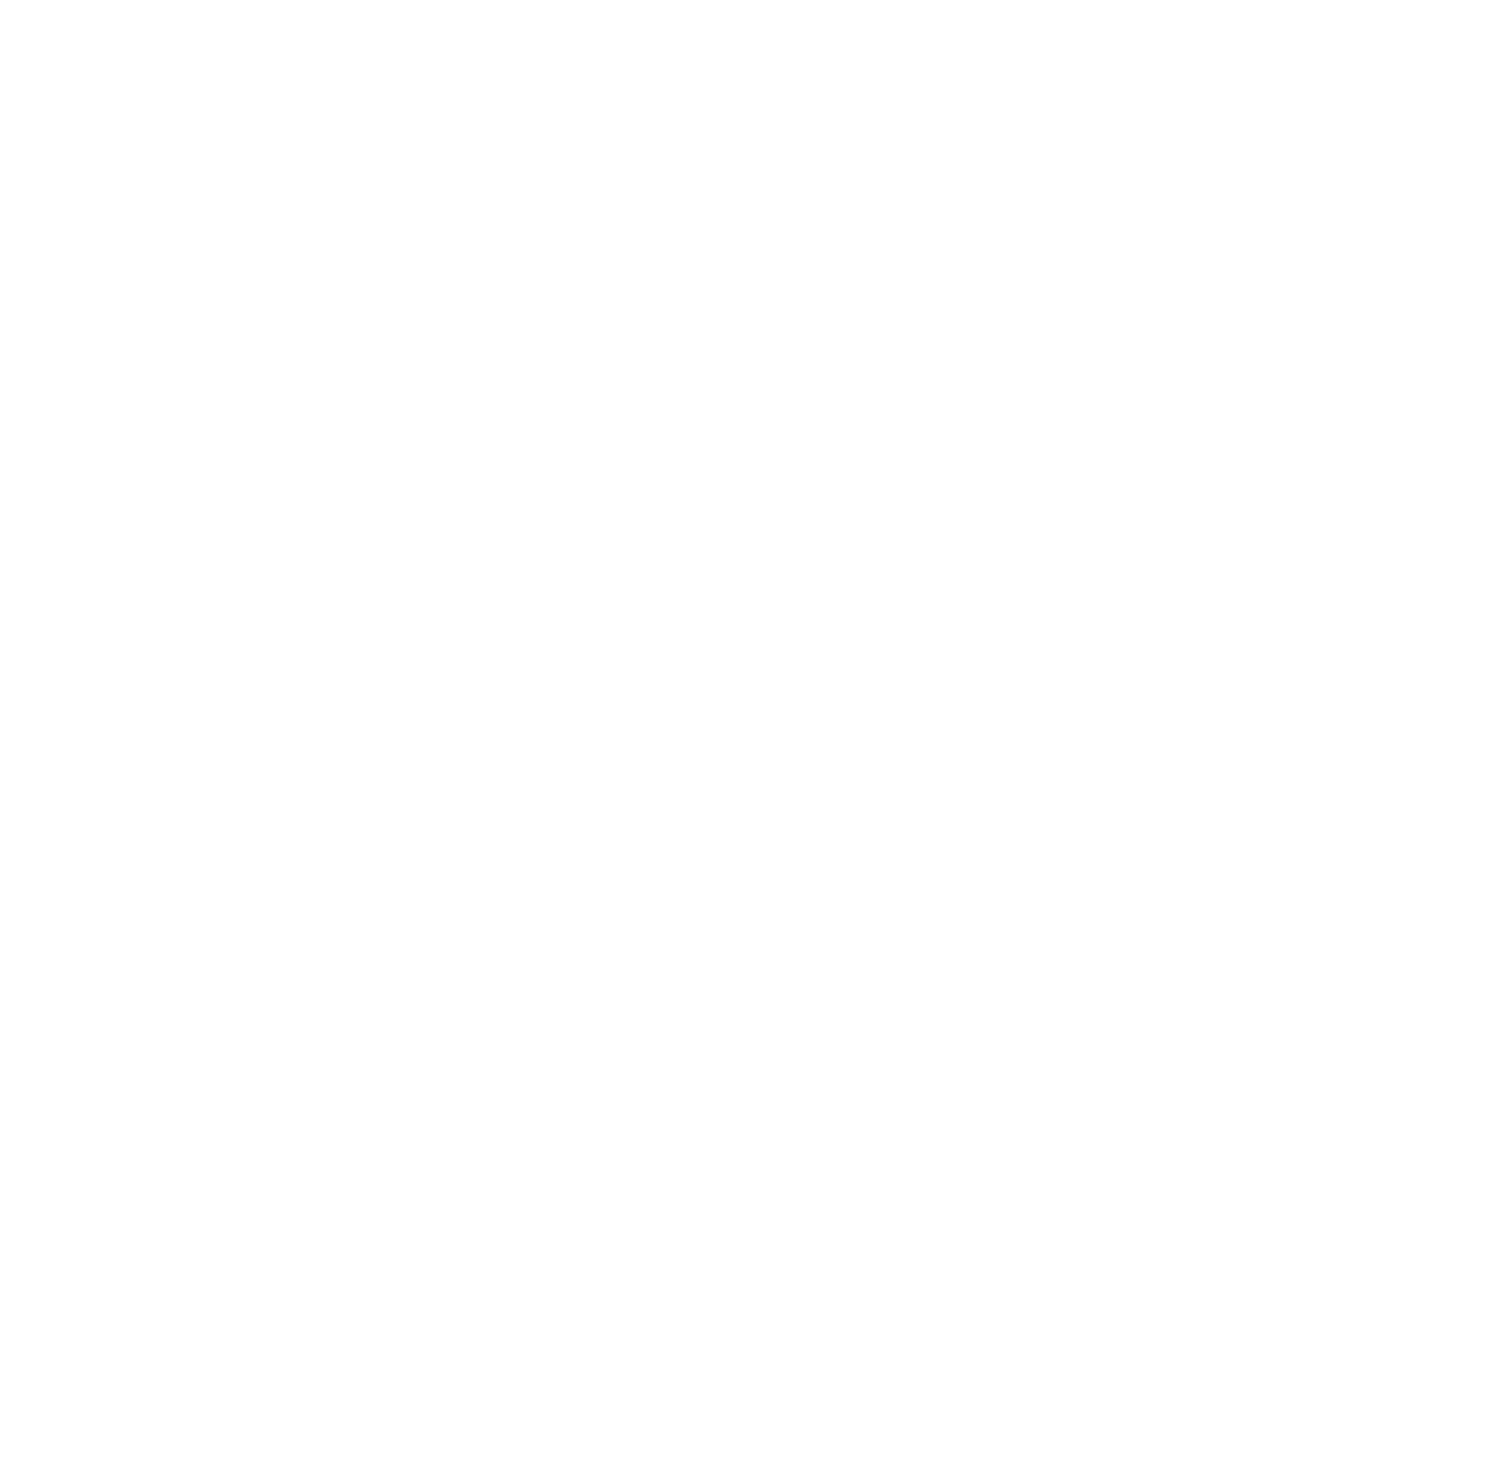 The Hortoccult